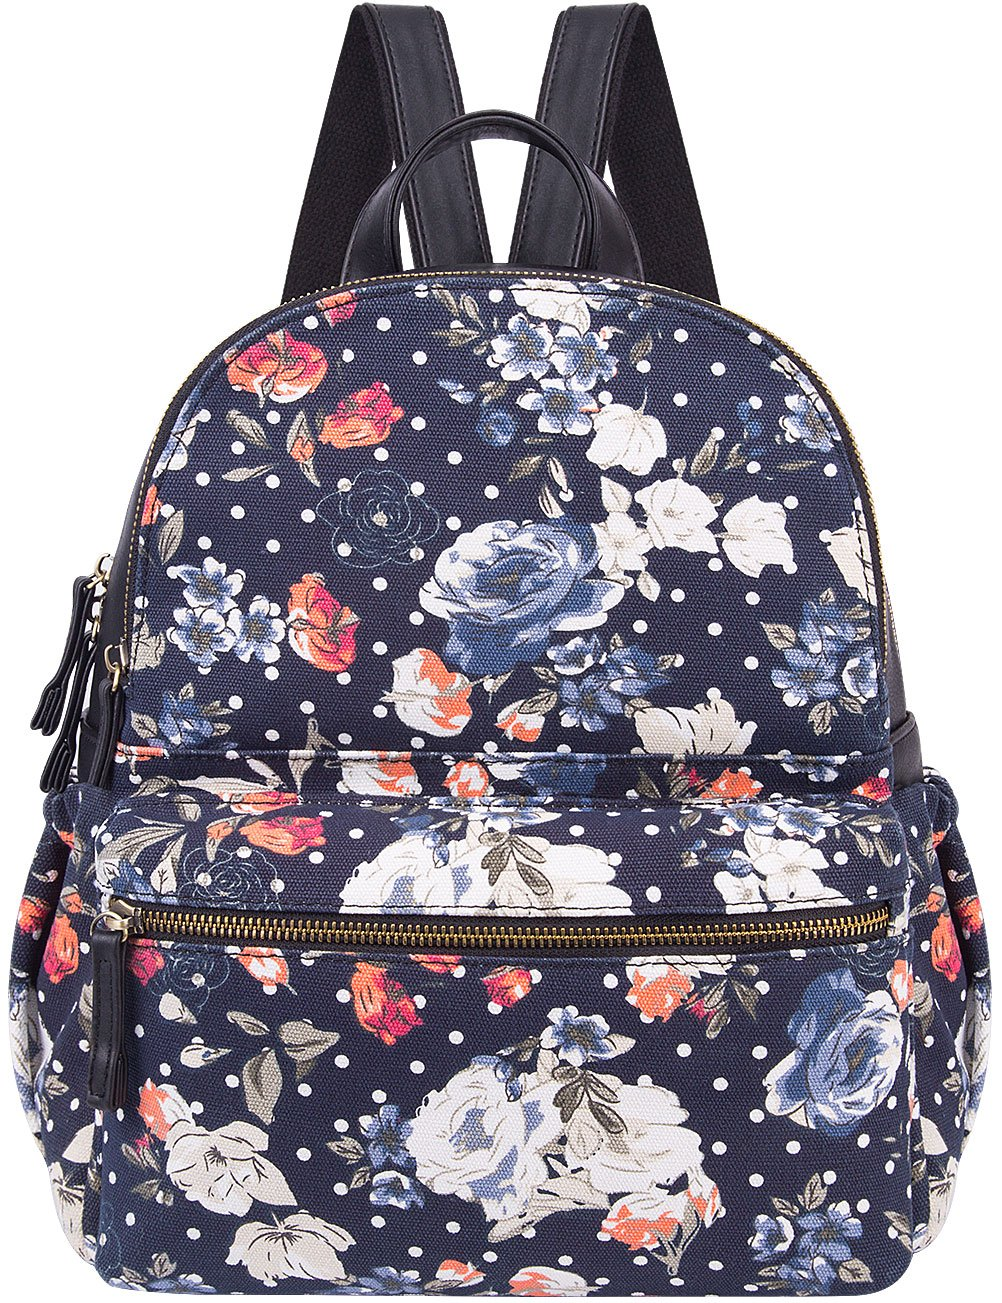 Cute Backpack for Women Canvas High School Daypack Casual Bookbags (Blue Flower)